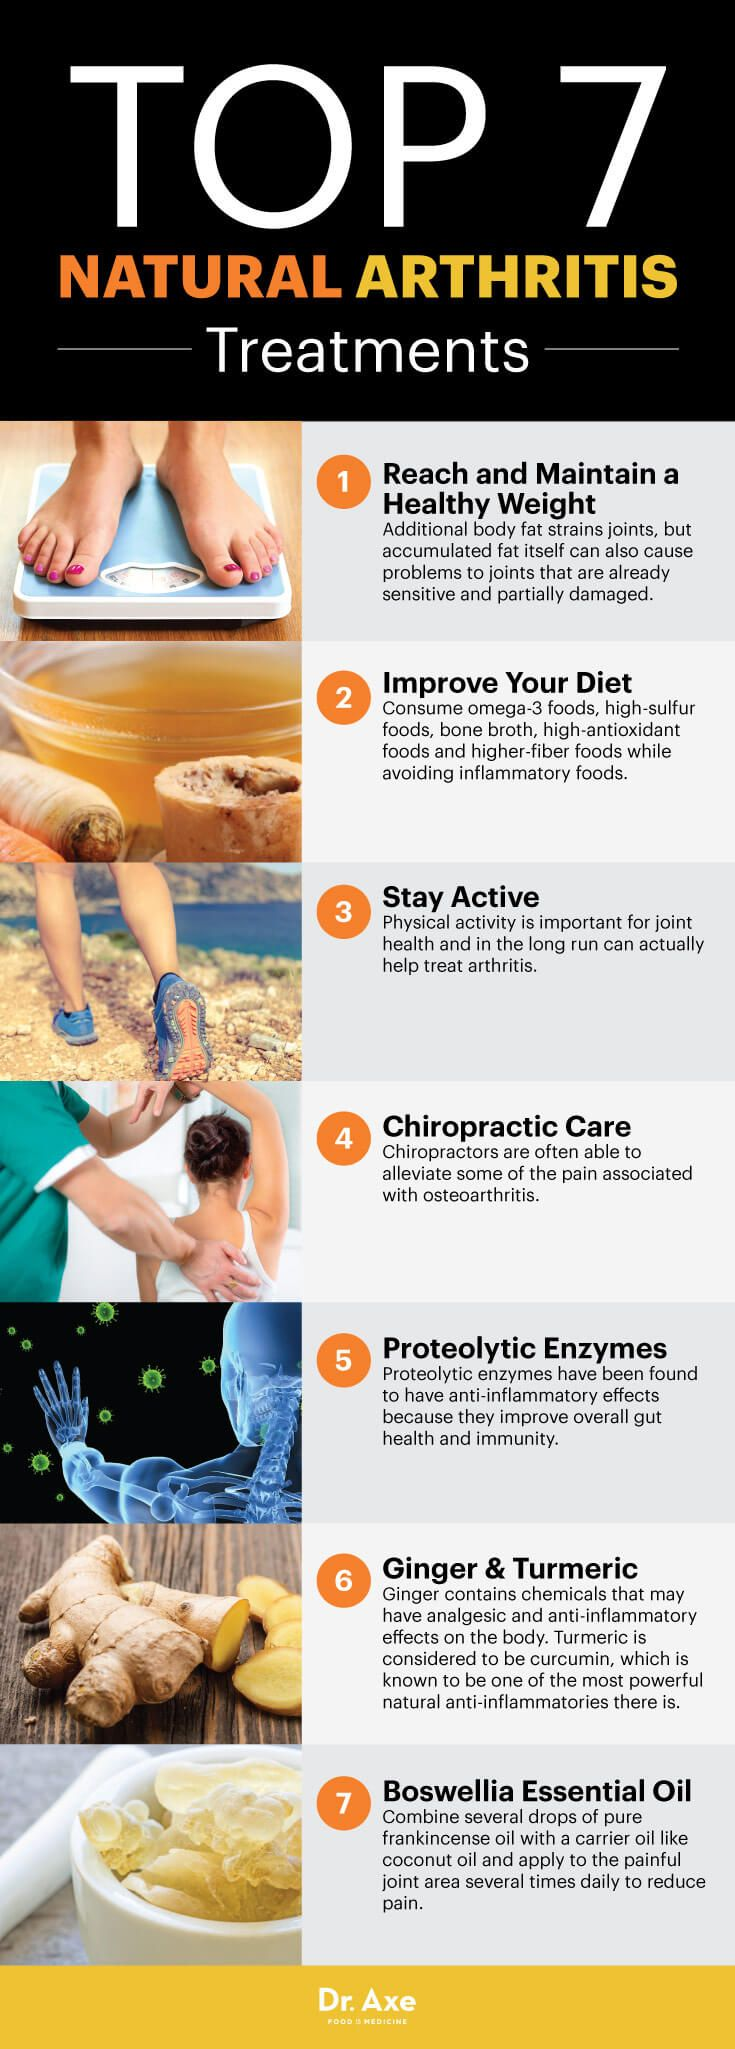 Effective All-Natural Treatments for Arthritis - Dr. Axe